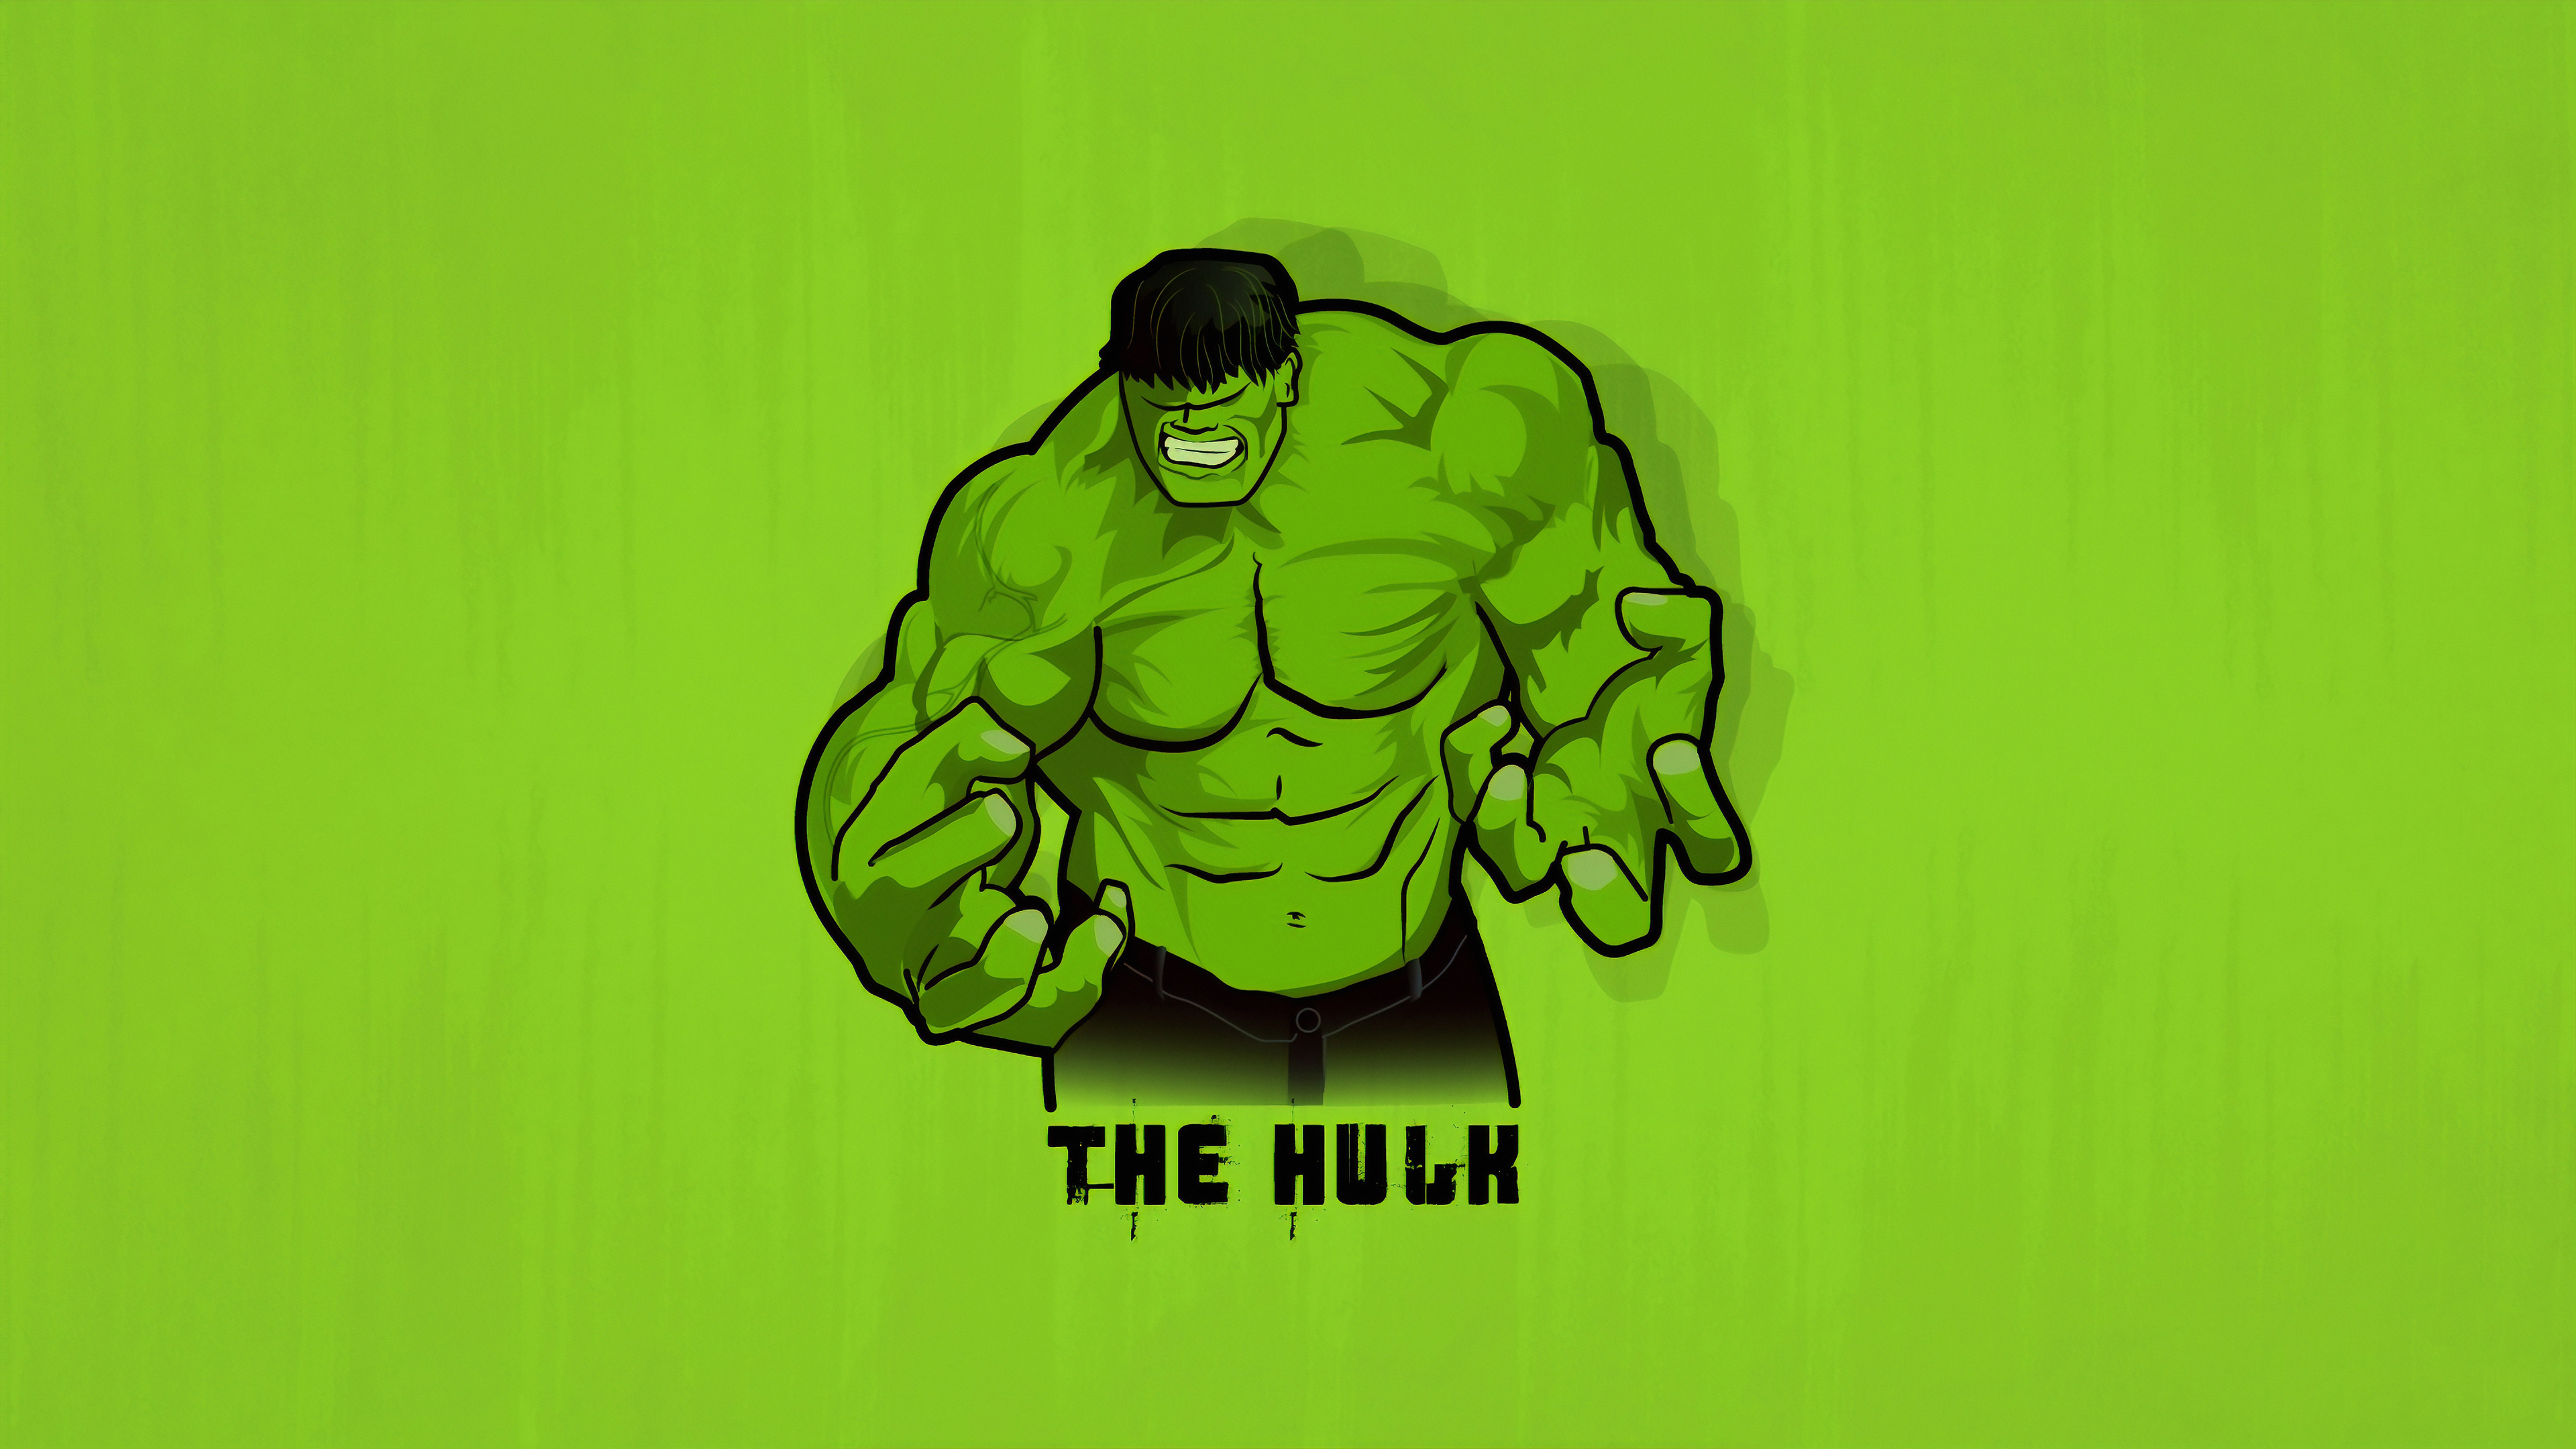 Minimal Hulk Wallpaper Hd Superheroes 4k Wallpapers Images